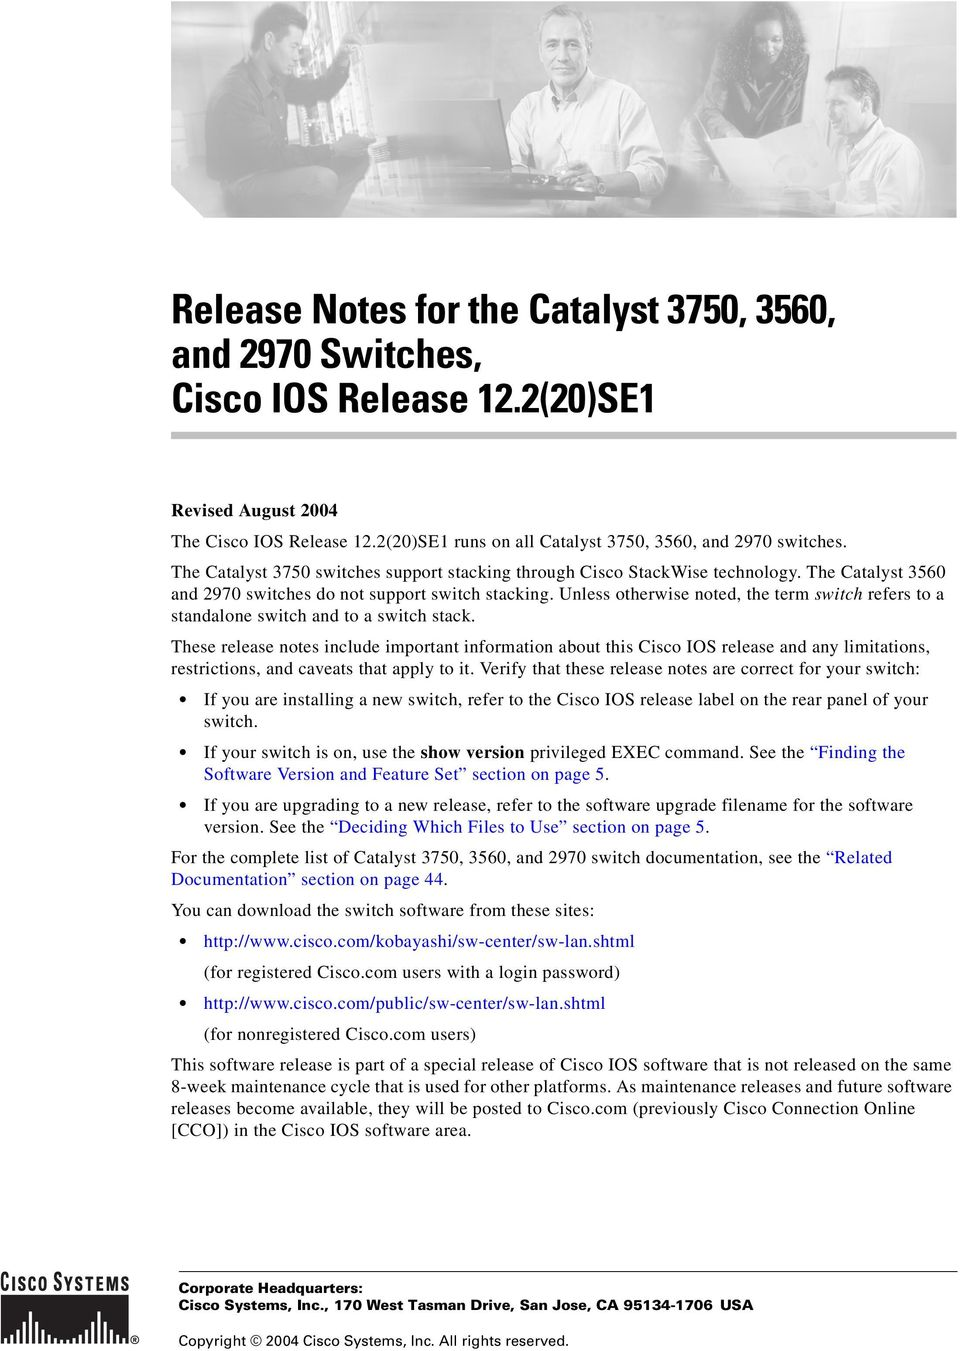 Release Notes for the Catalyst 3750, 3560, and 2970 Switches, Cisco